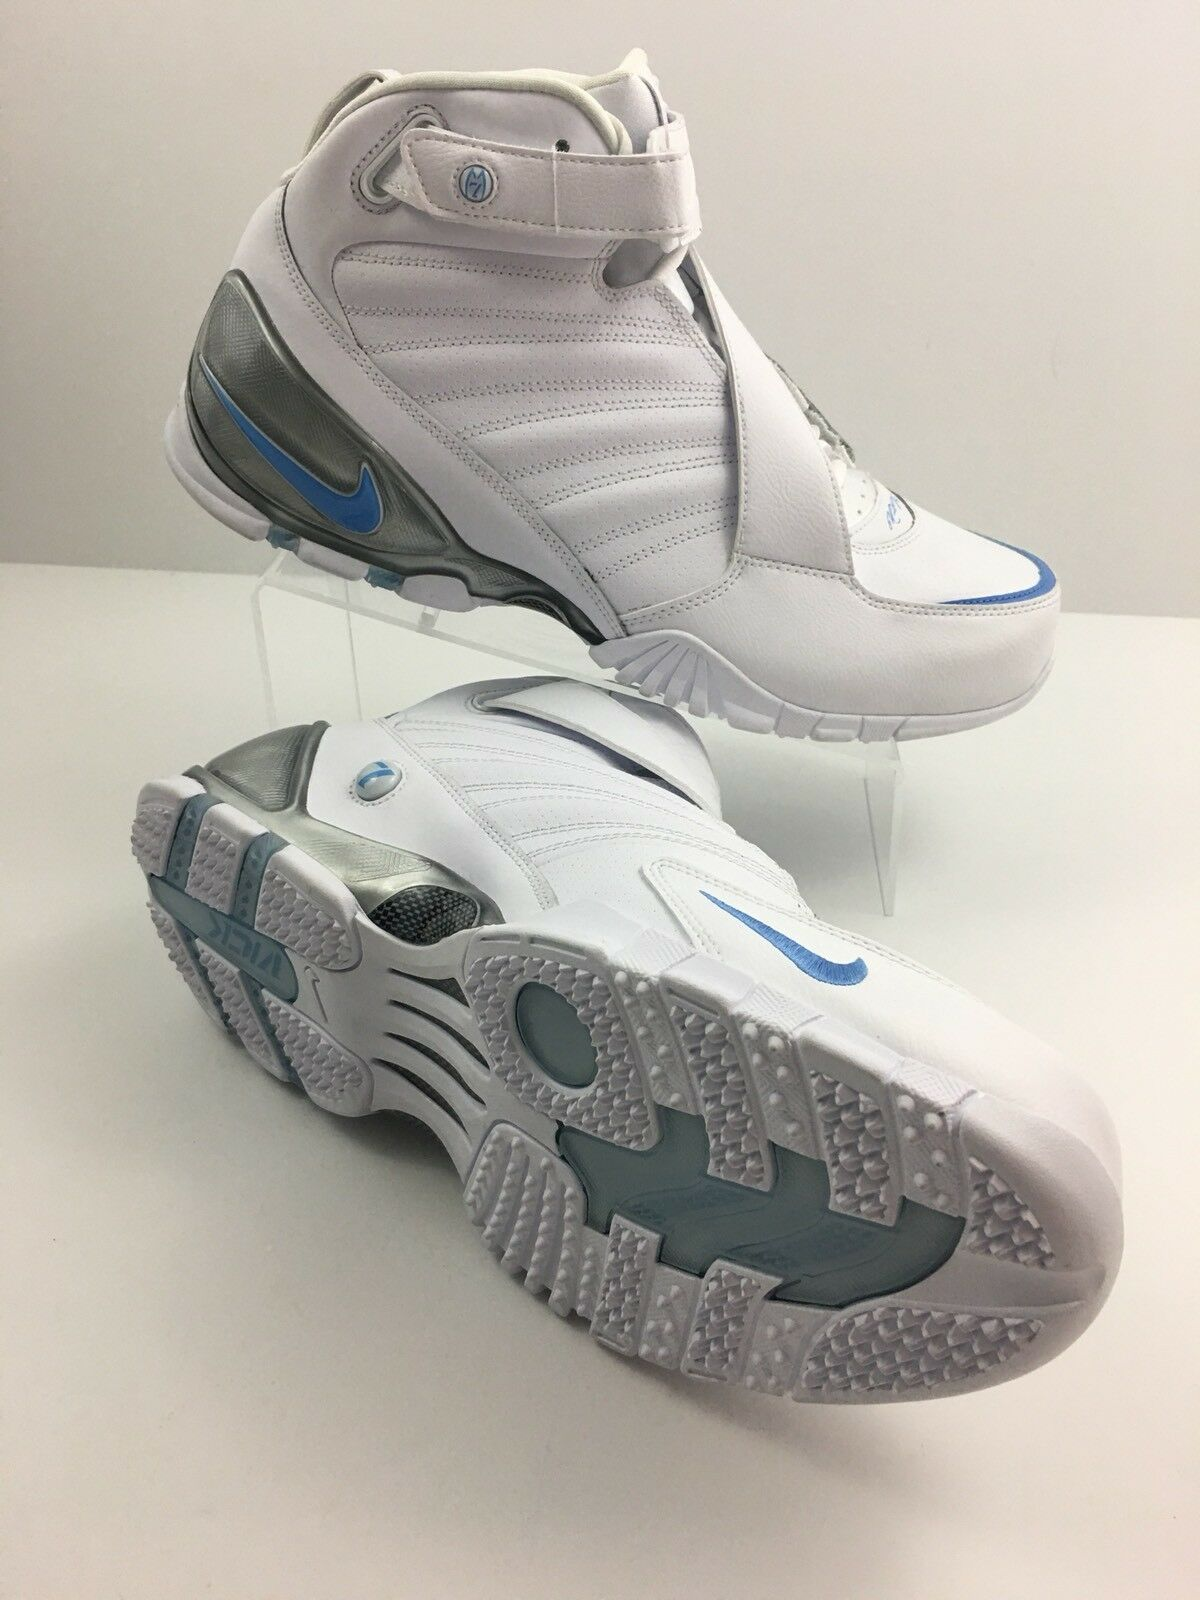 Nike Zoom Air Vick 3 III Trainer White University Blue Turf 832698-100 Comfortable Comfortable and good-looking